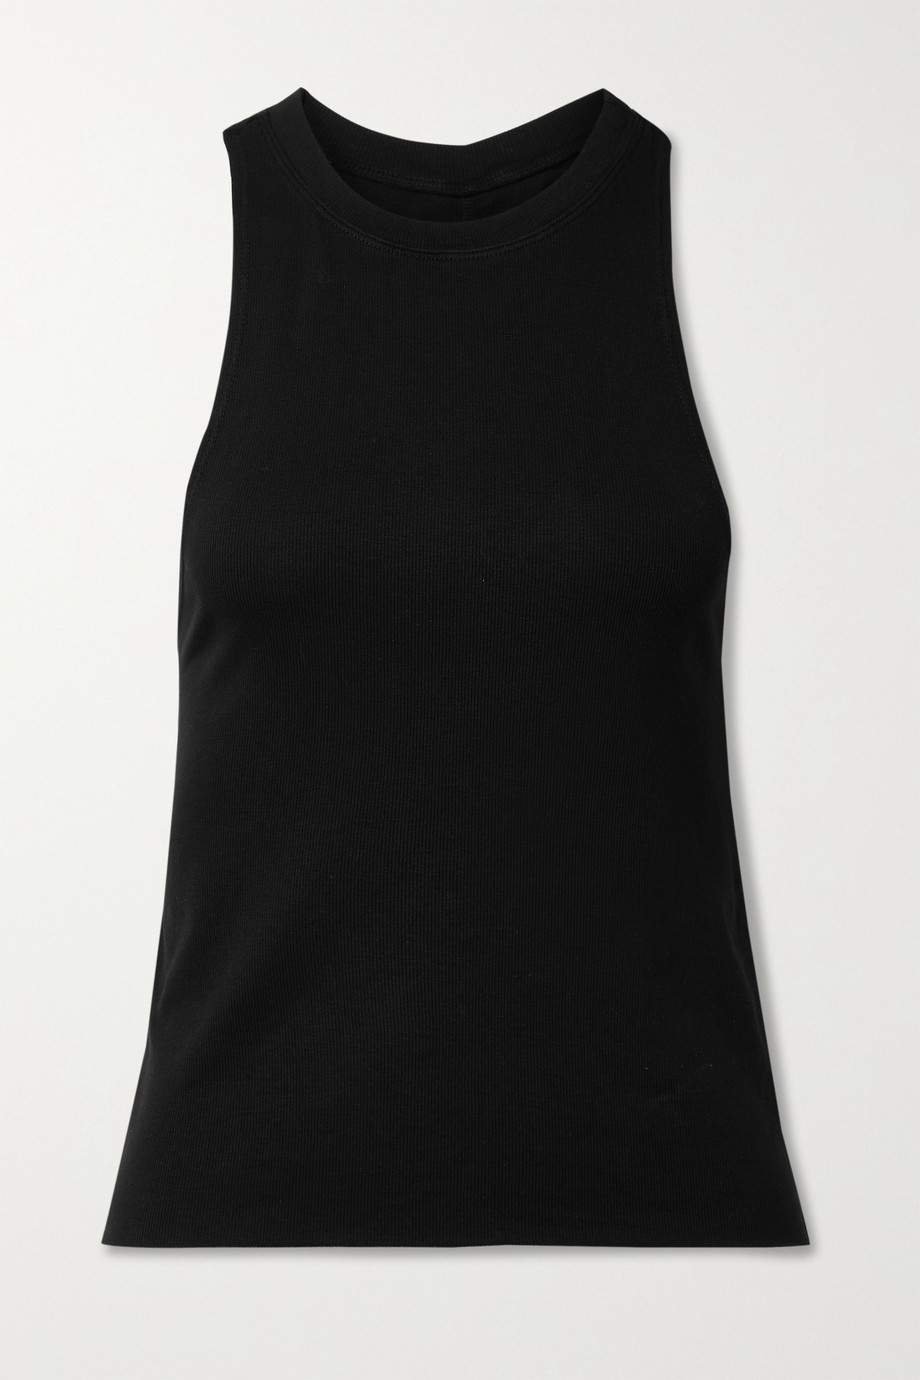 All Access Dynamic stretch cotton and modal-blend jersey tank